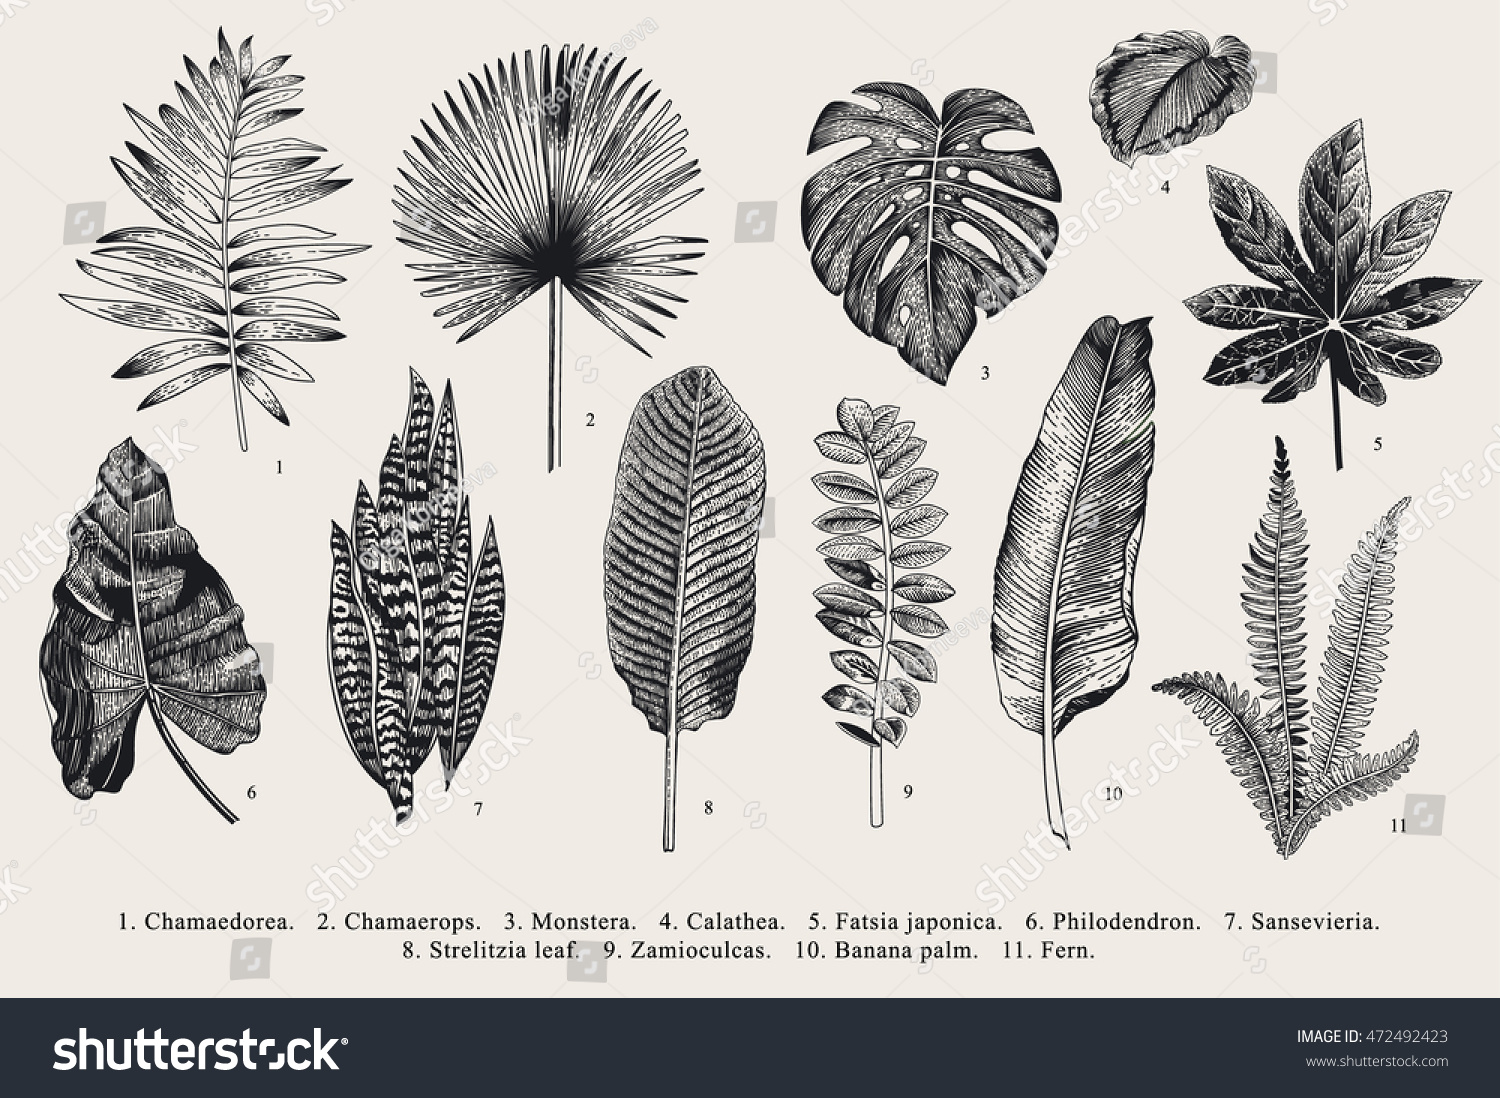 Botanical illustration black and white - photo#27